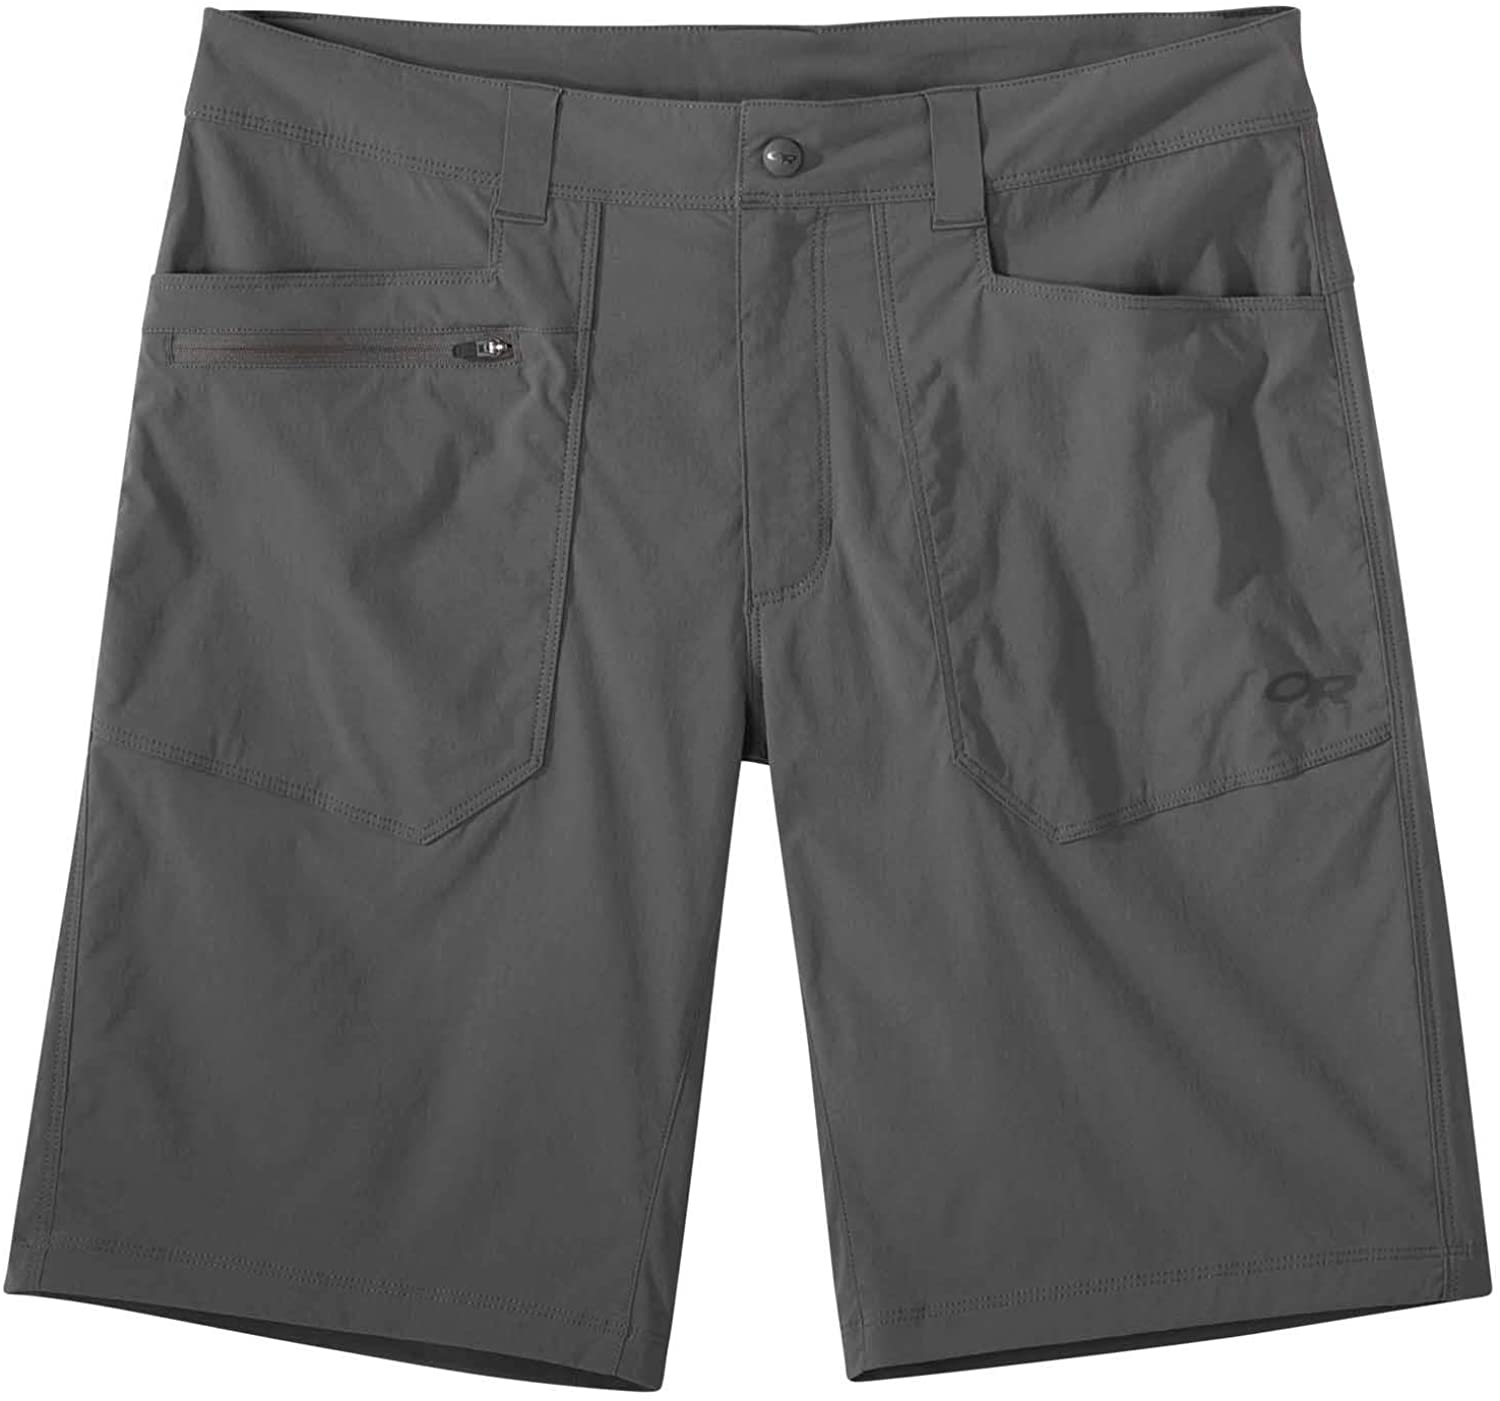 Outdoor Research Men's Equinox Lightweight Quick-Drying Shorts - 10